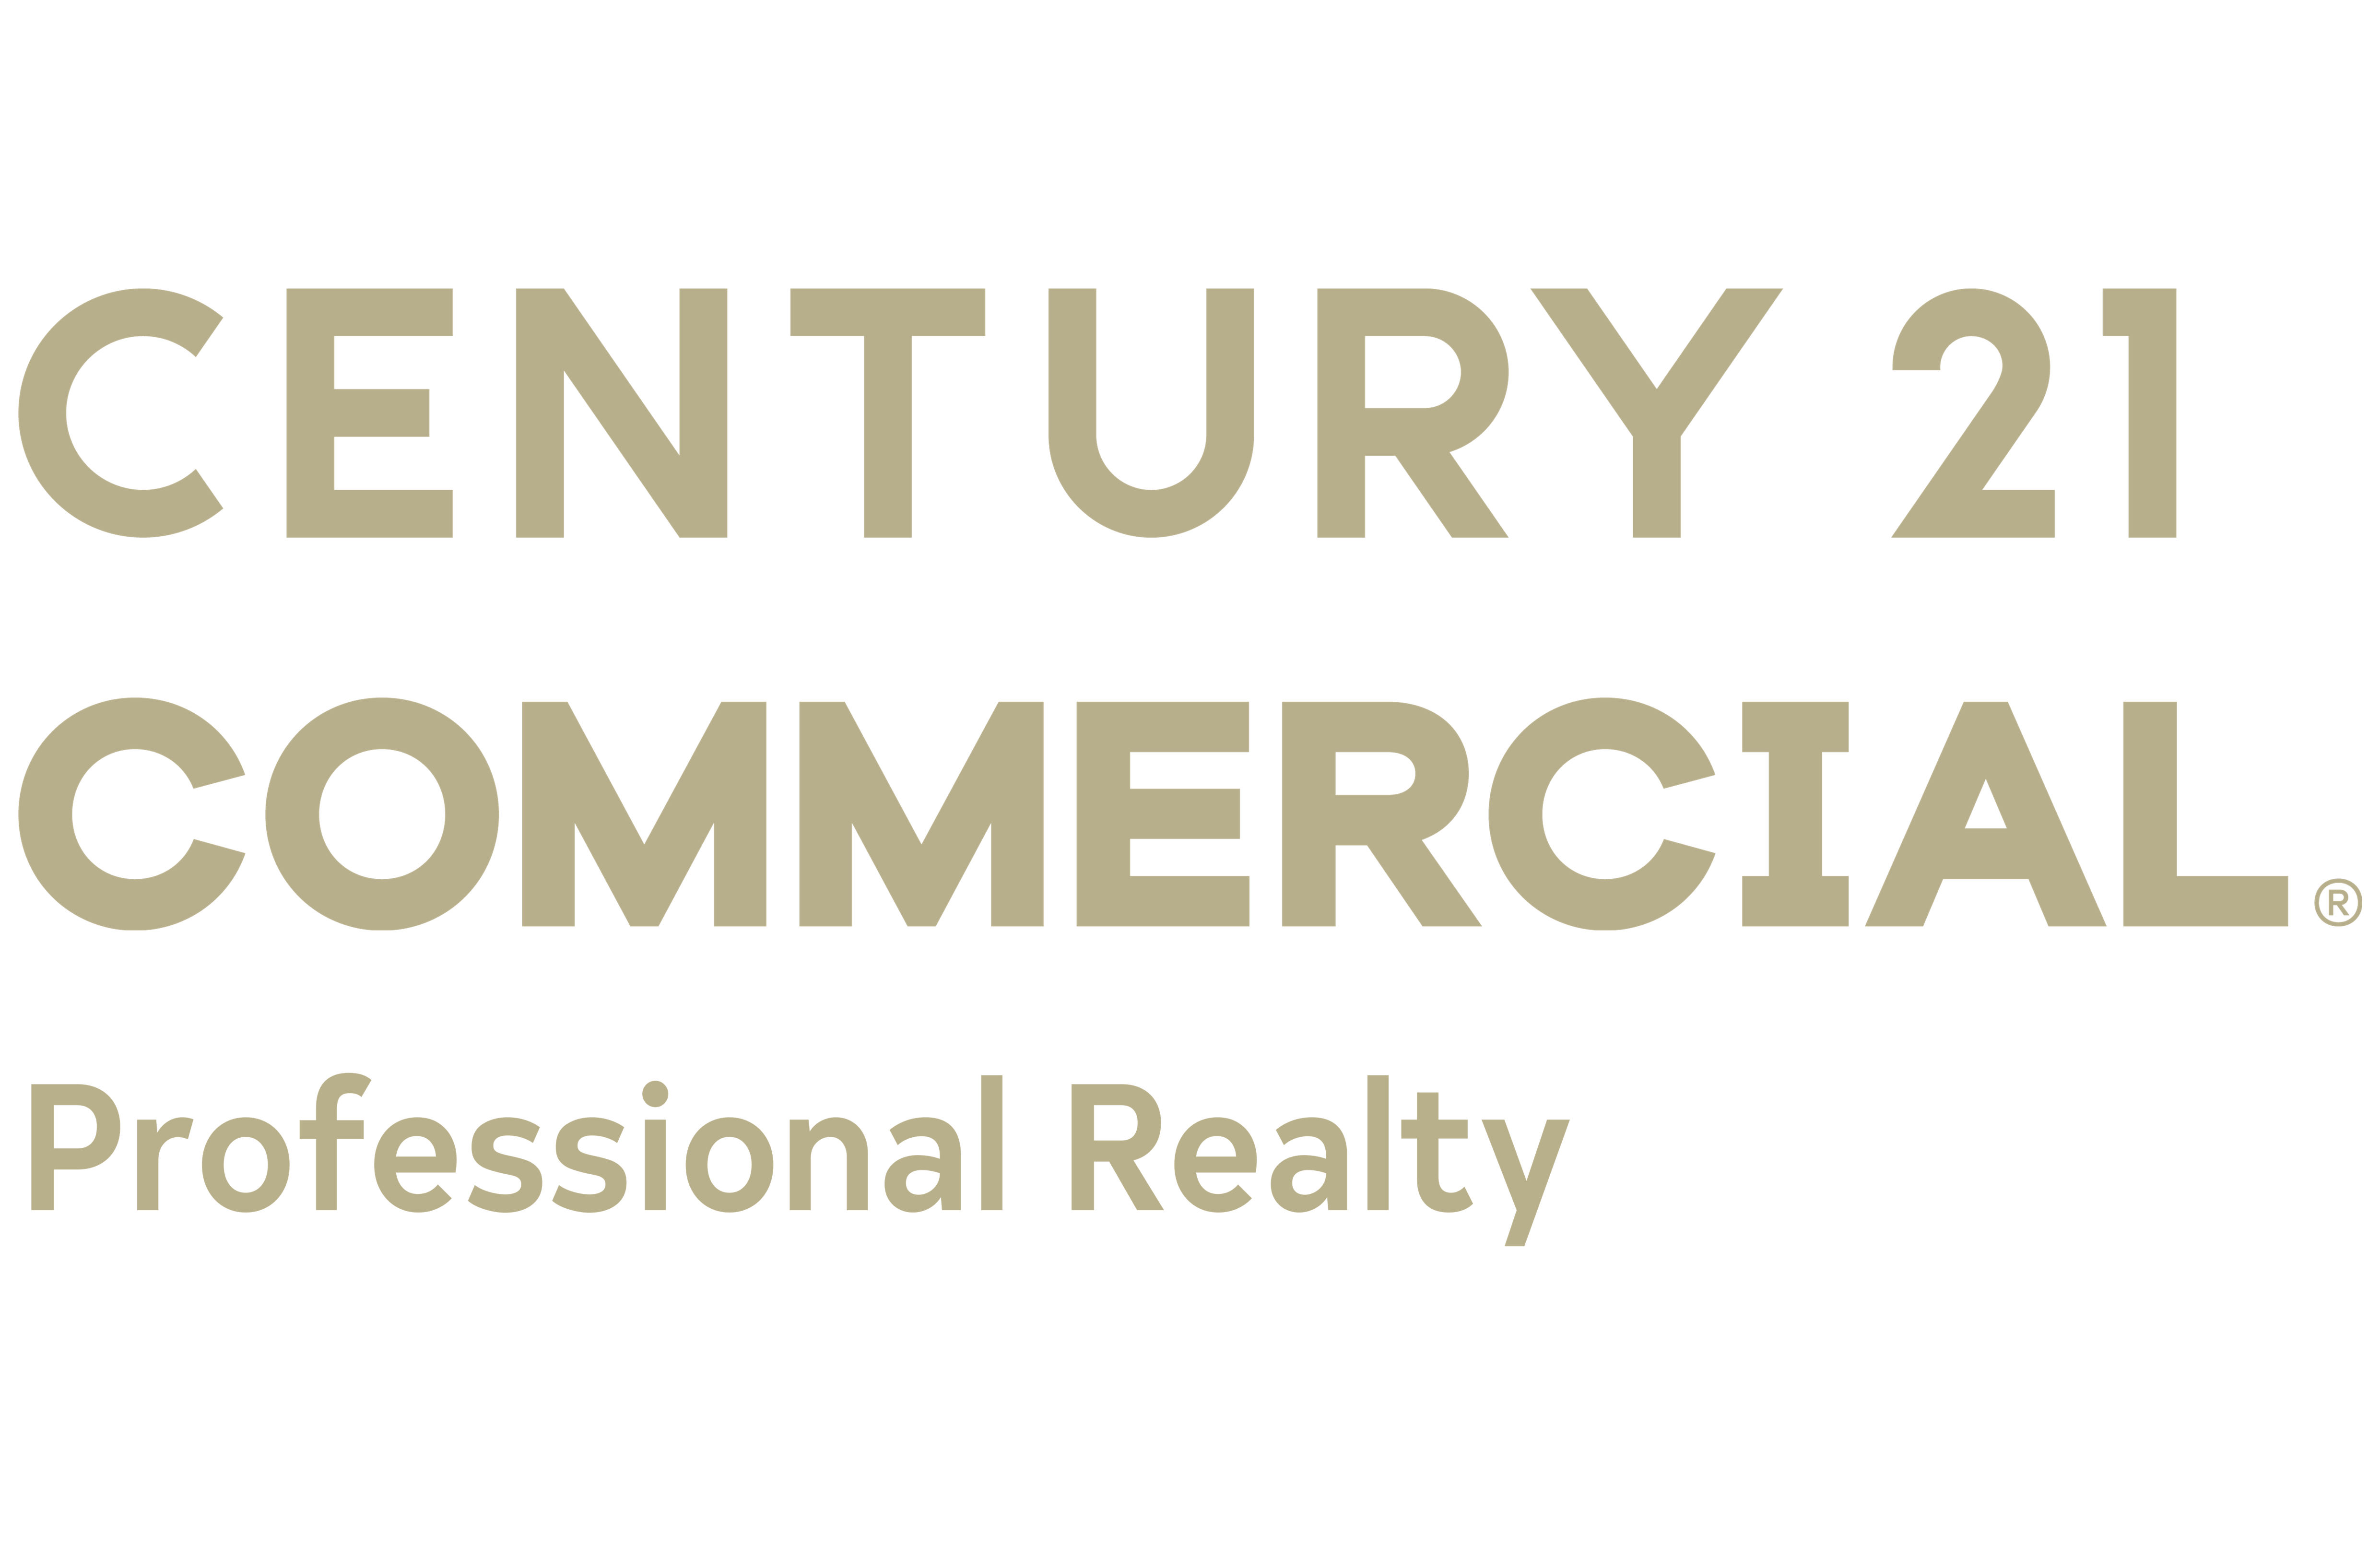 CENTURY 21 Professional Realty